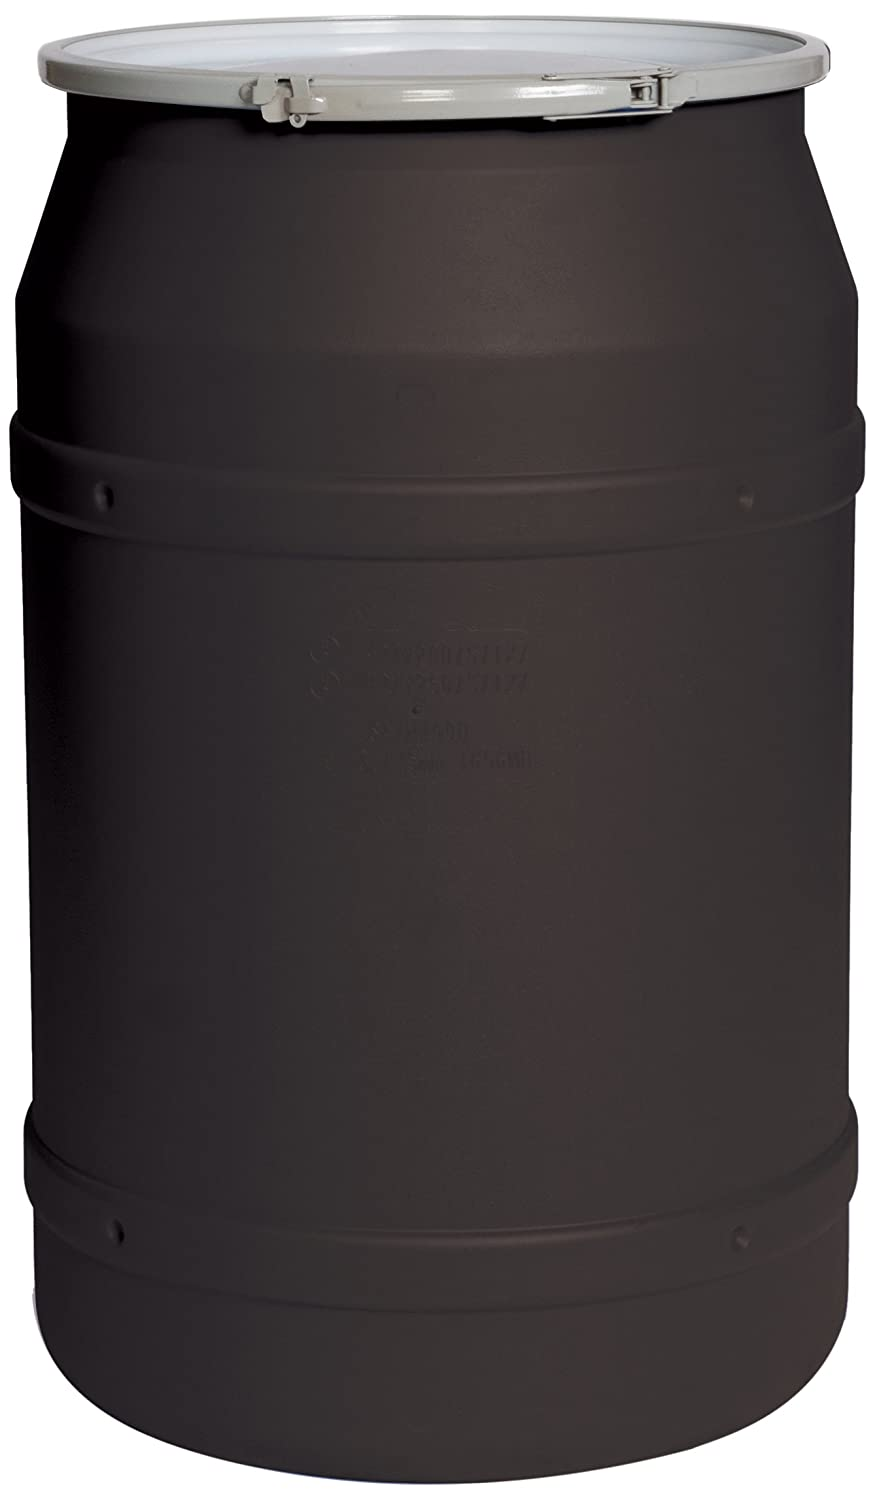 Eagle 1656MBLK Black Drum with Metal Lever Lock Ring, 55 gal Capacity